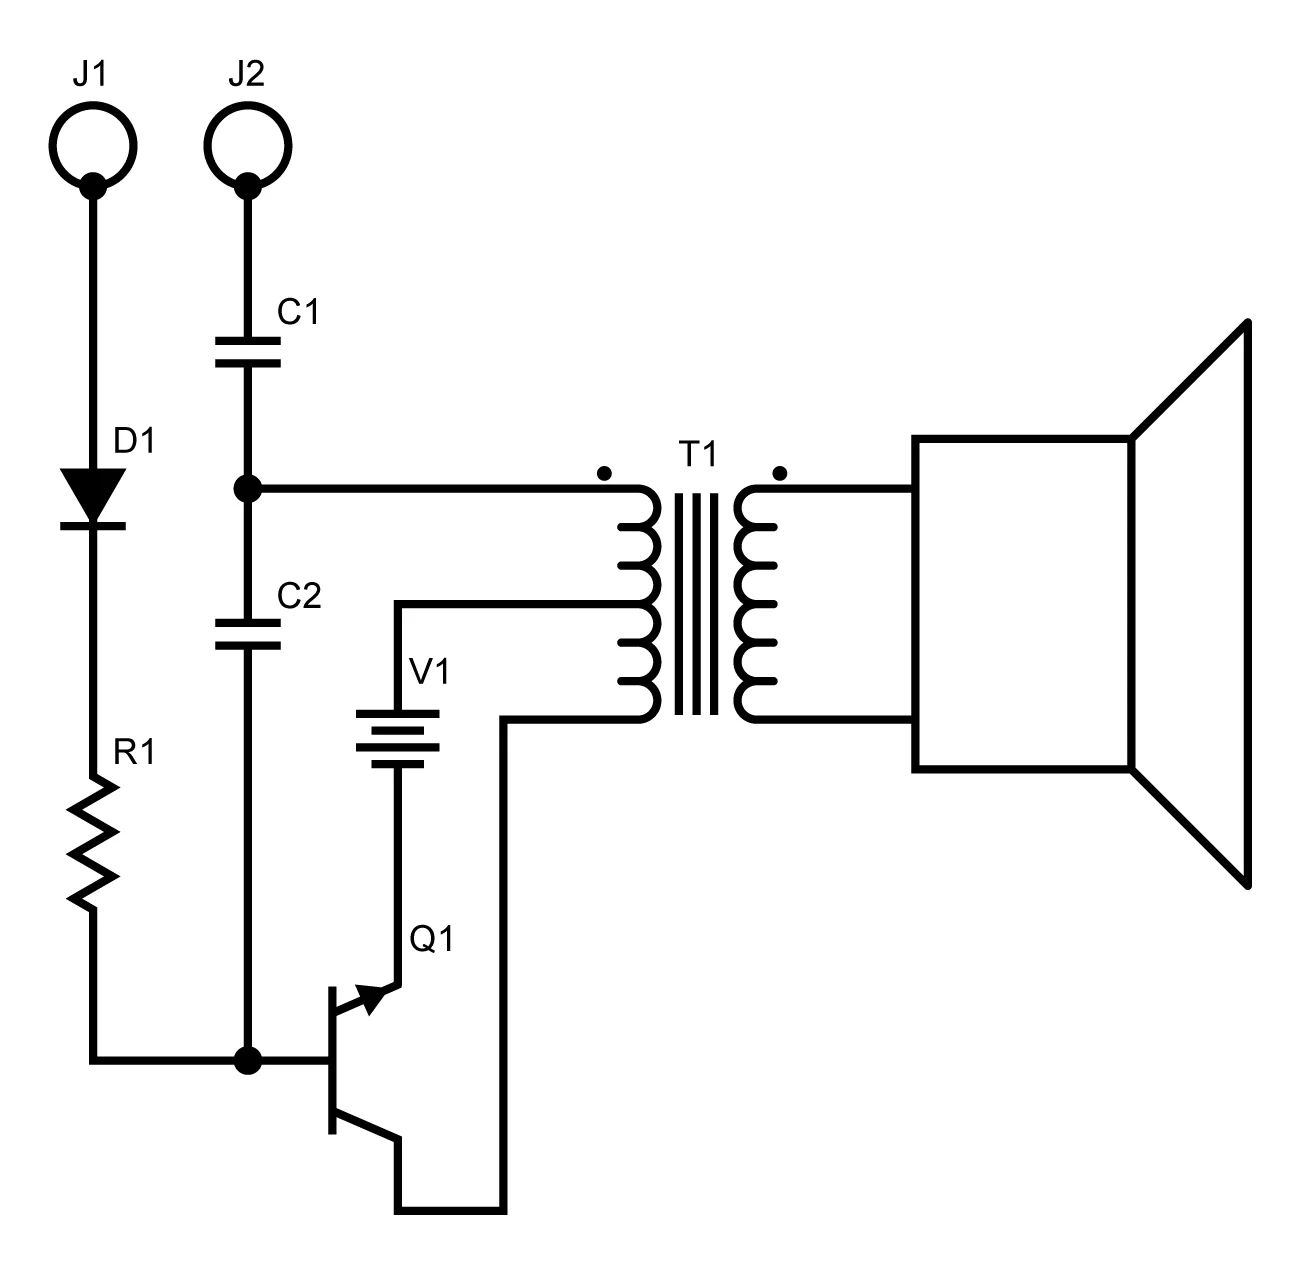 which allows you to design your electronic circuits on stripboards